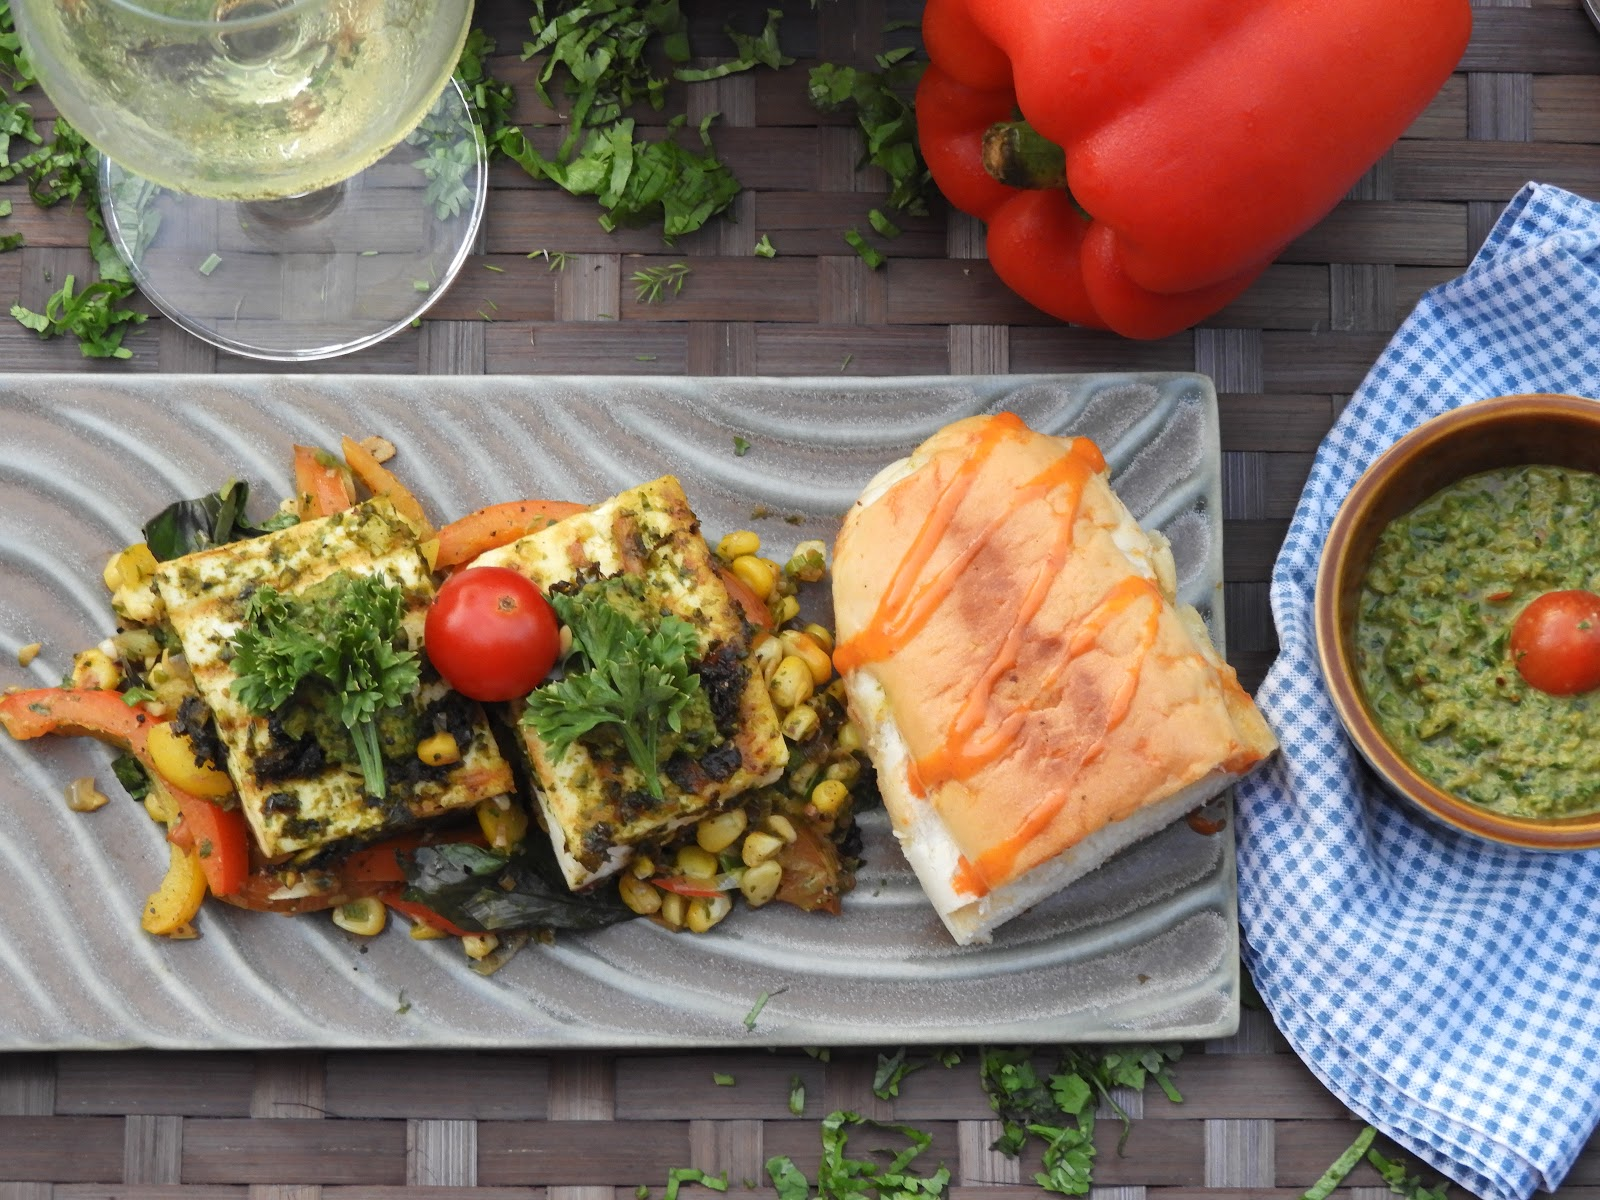 Grilled Cottage Cheese & Vegetables with Chimichurri Sauce - American cuisine at Kitchen by Nidhi